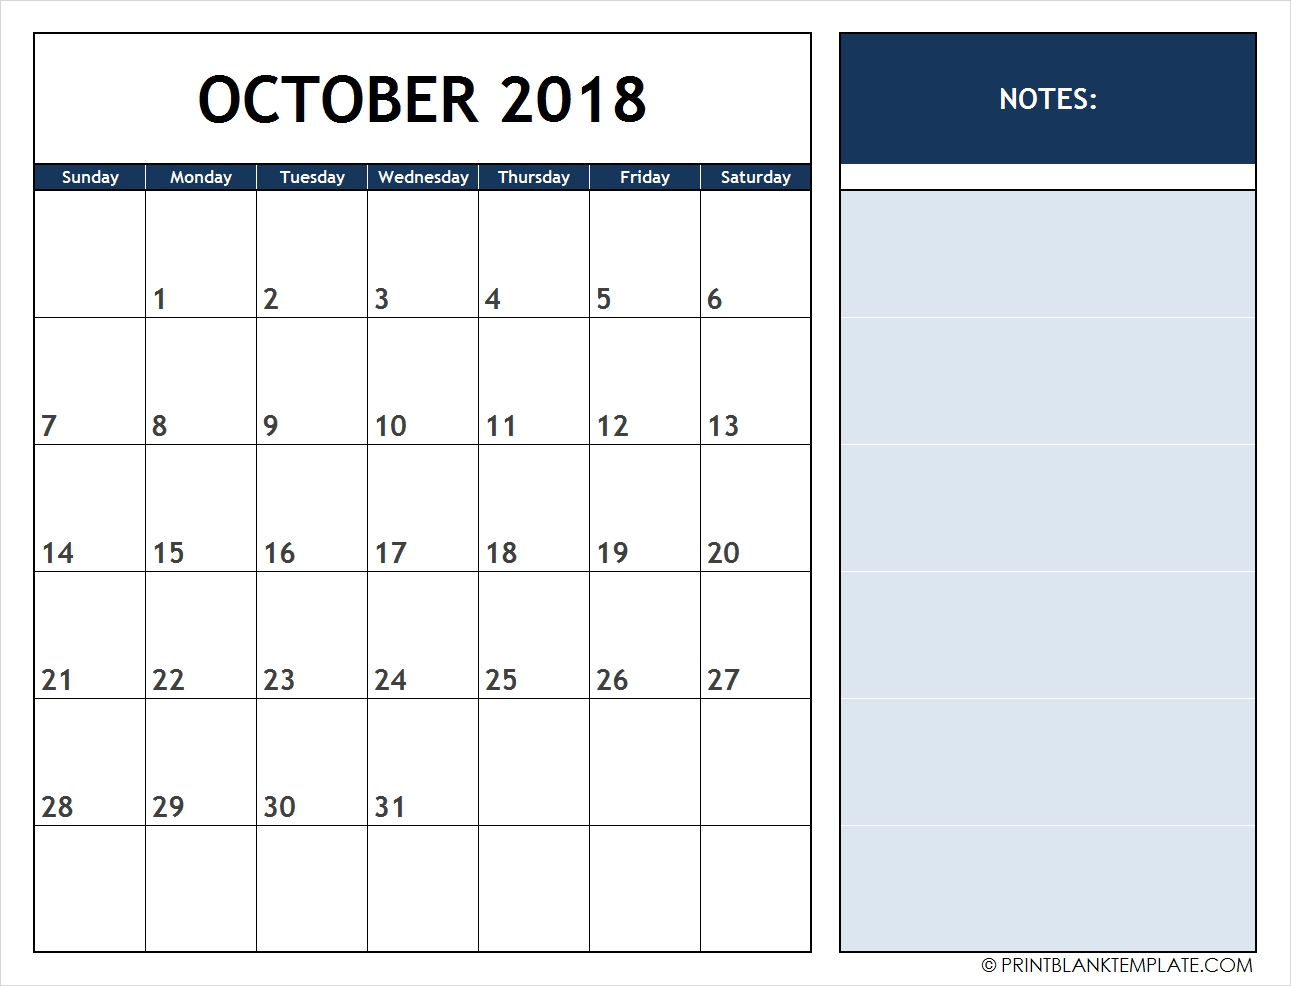 print 12 months calendar templates free October 2018 Calendar with Notes erdferdf